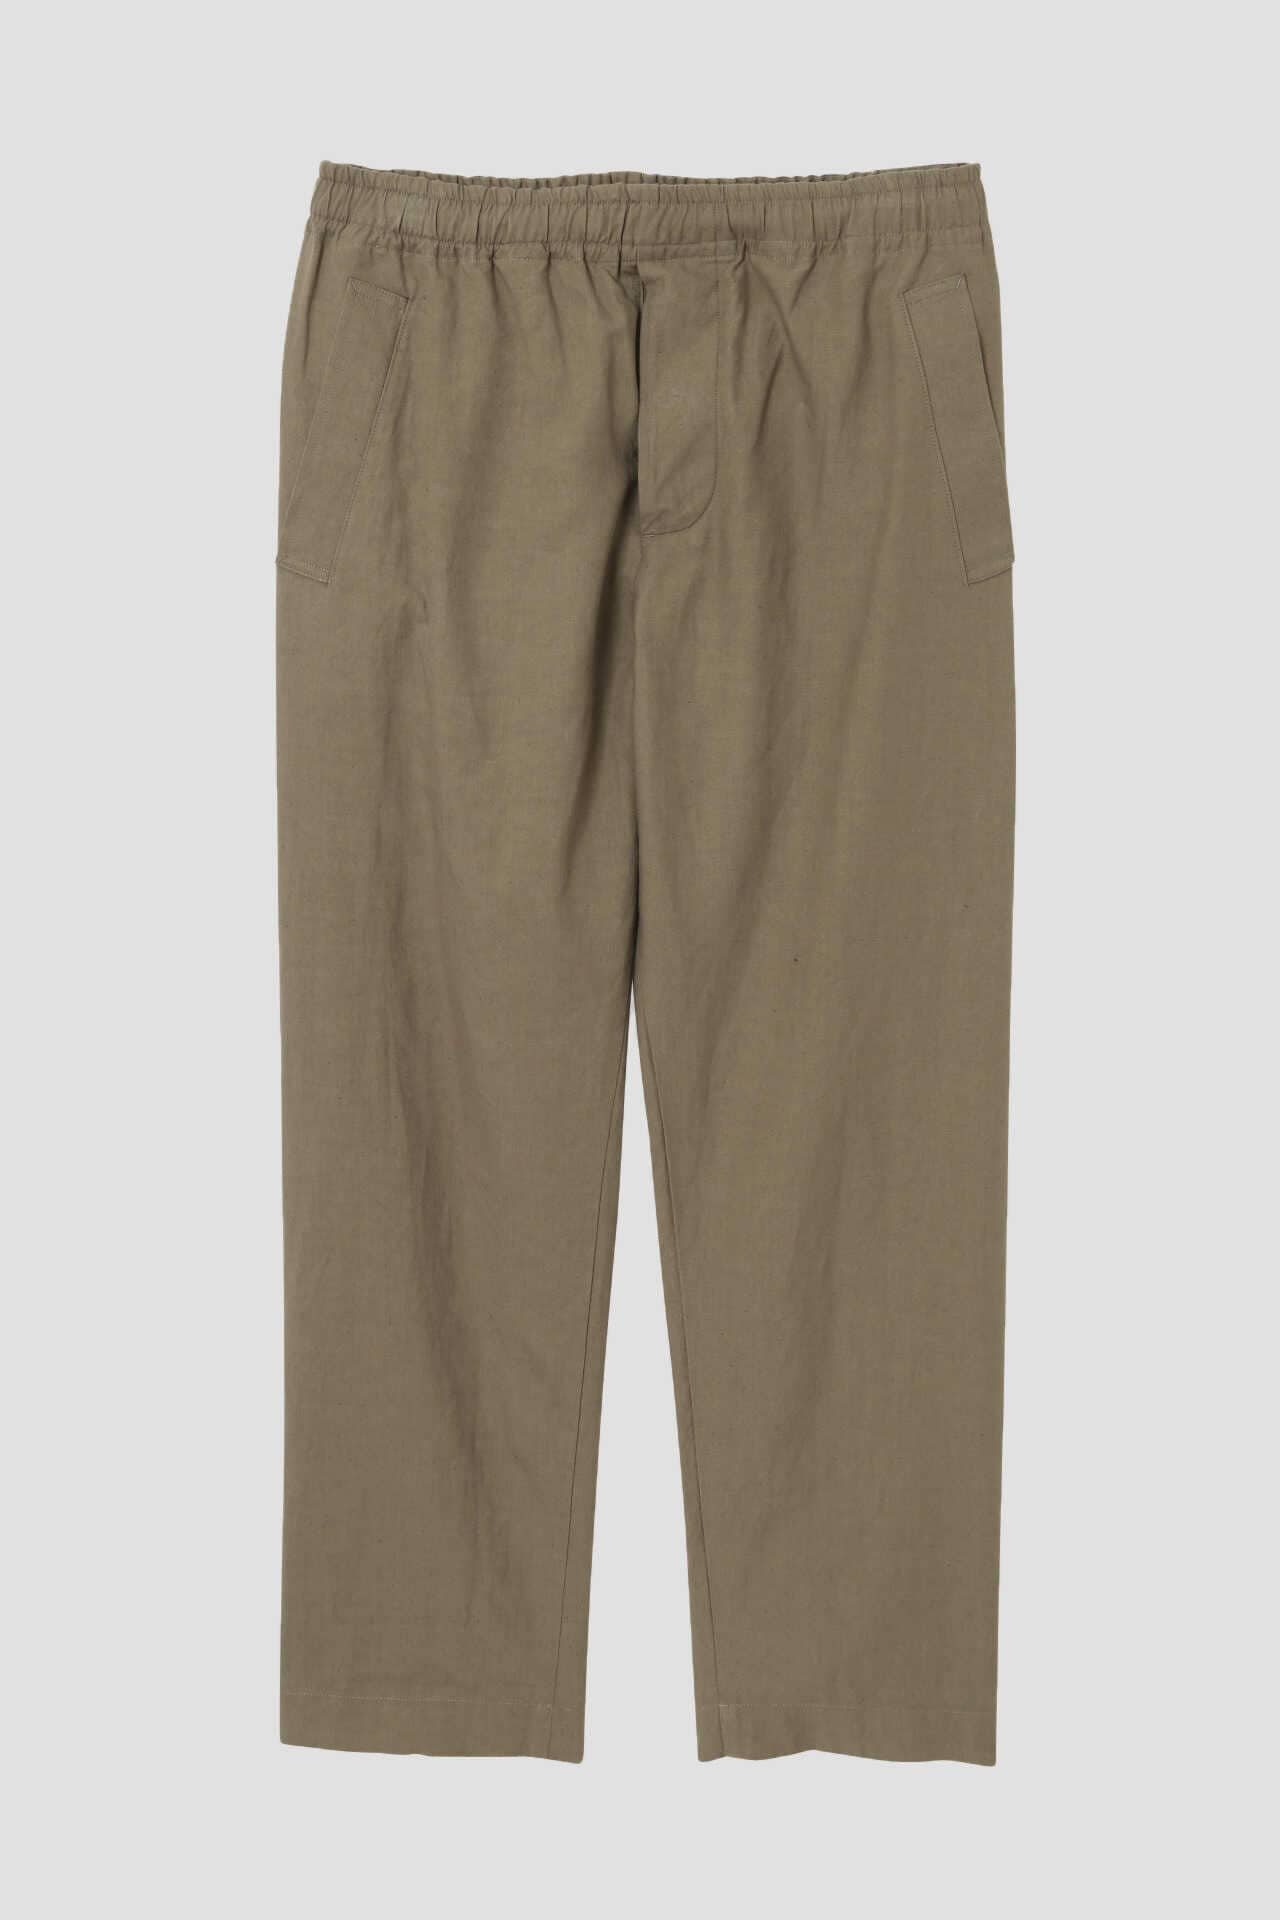 LINEN COTTON TWILL5